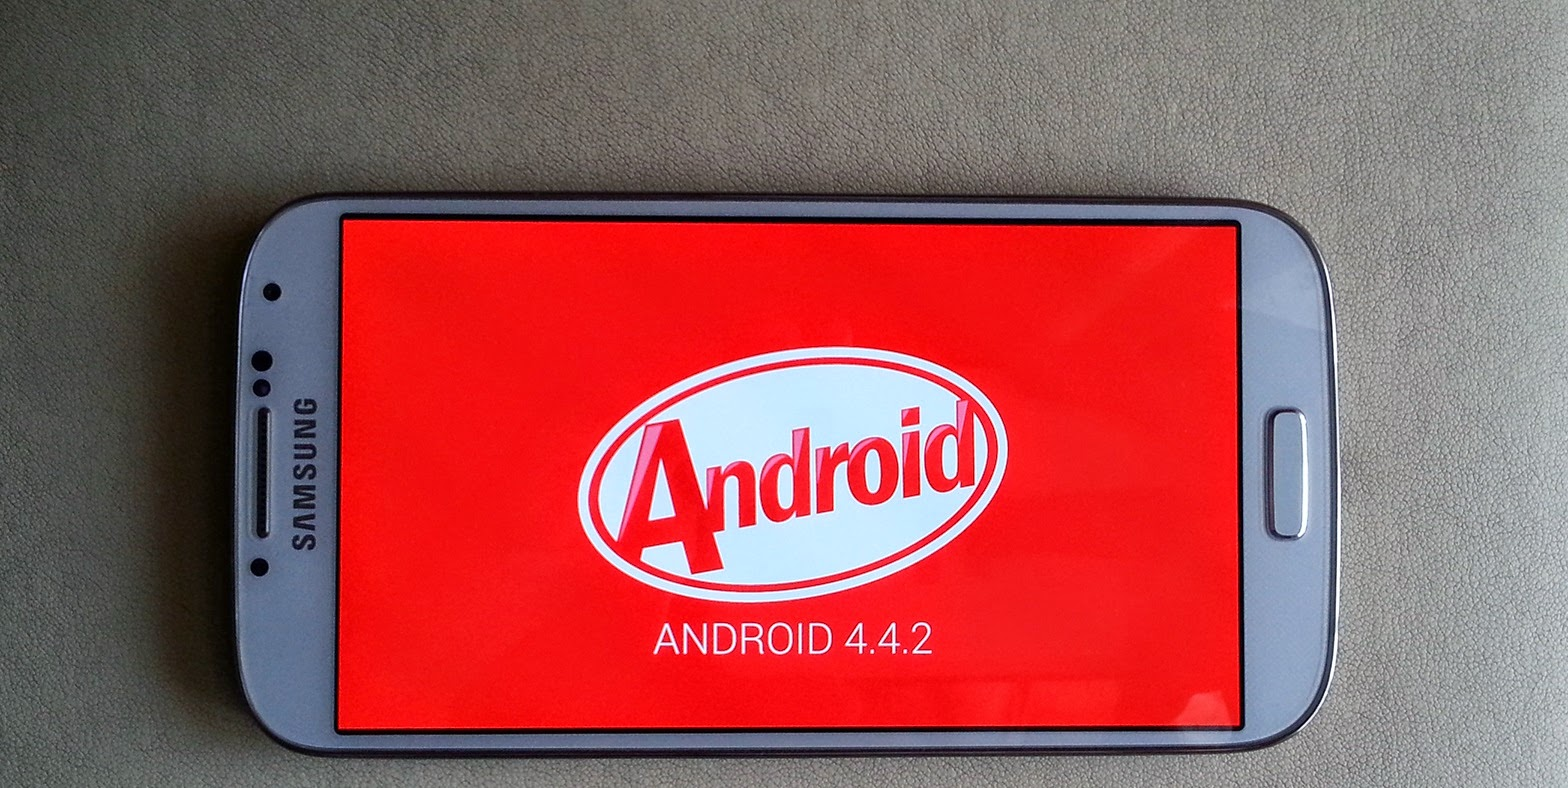 Samsung Galaxy S5 Android 4.4.2 KitKat